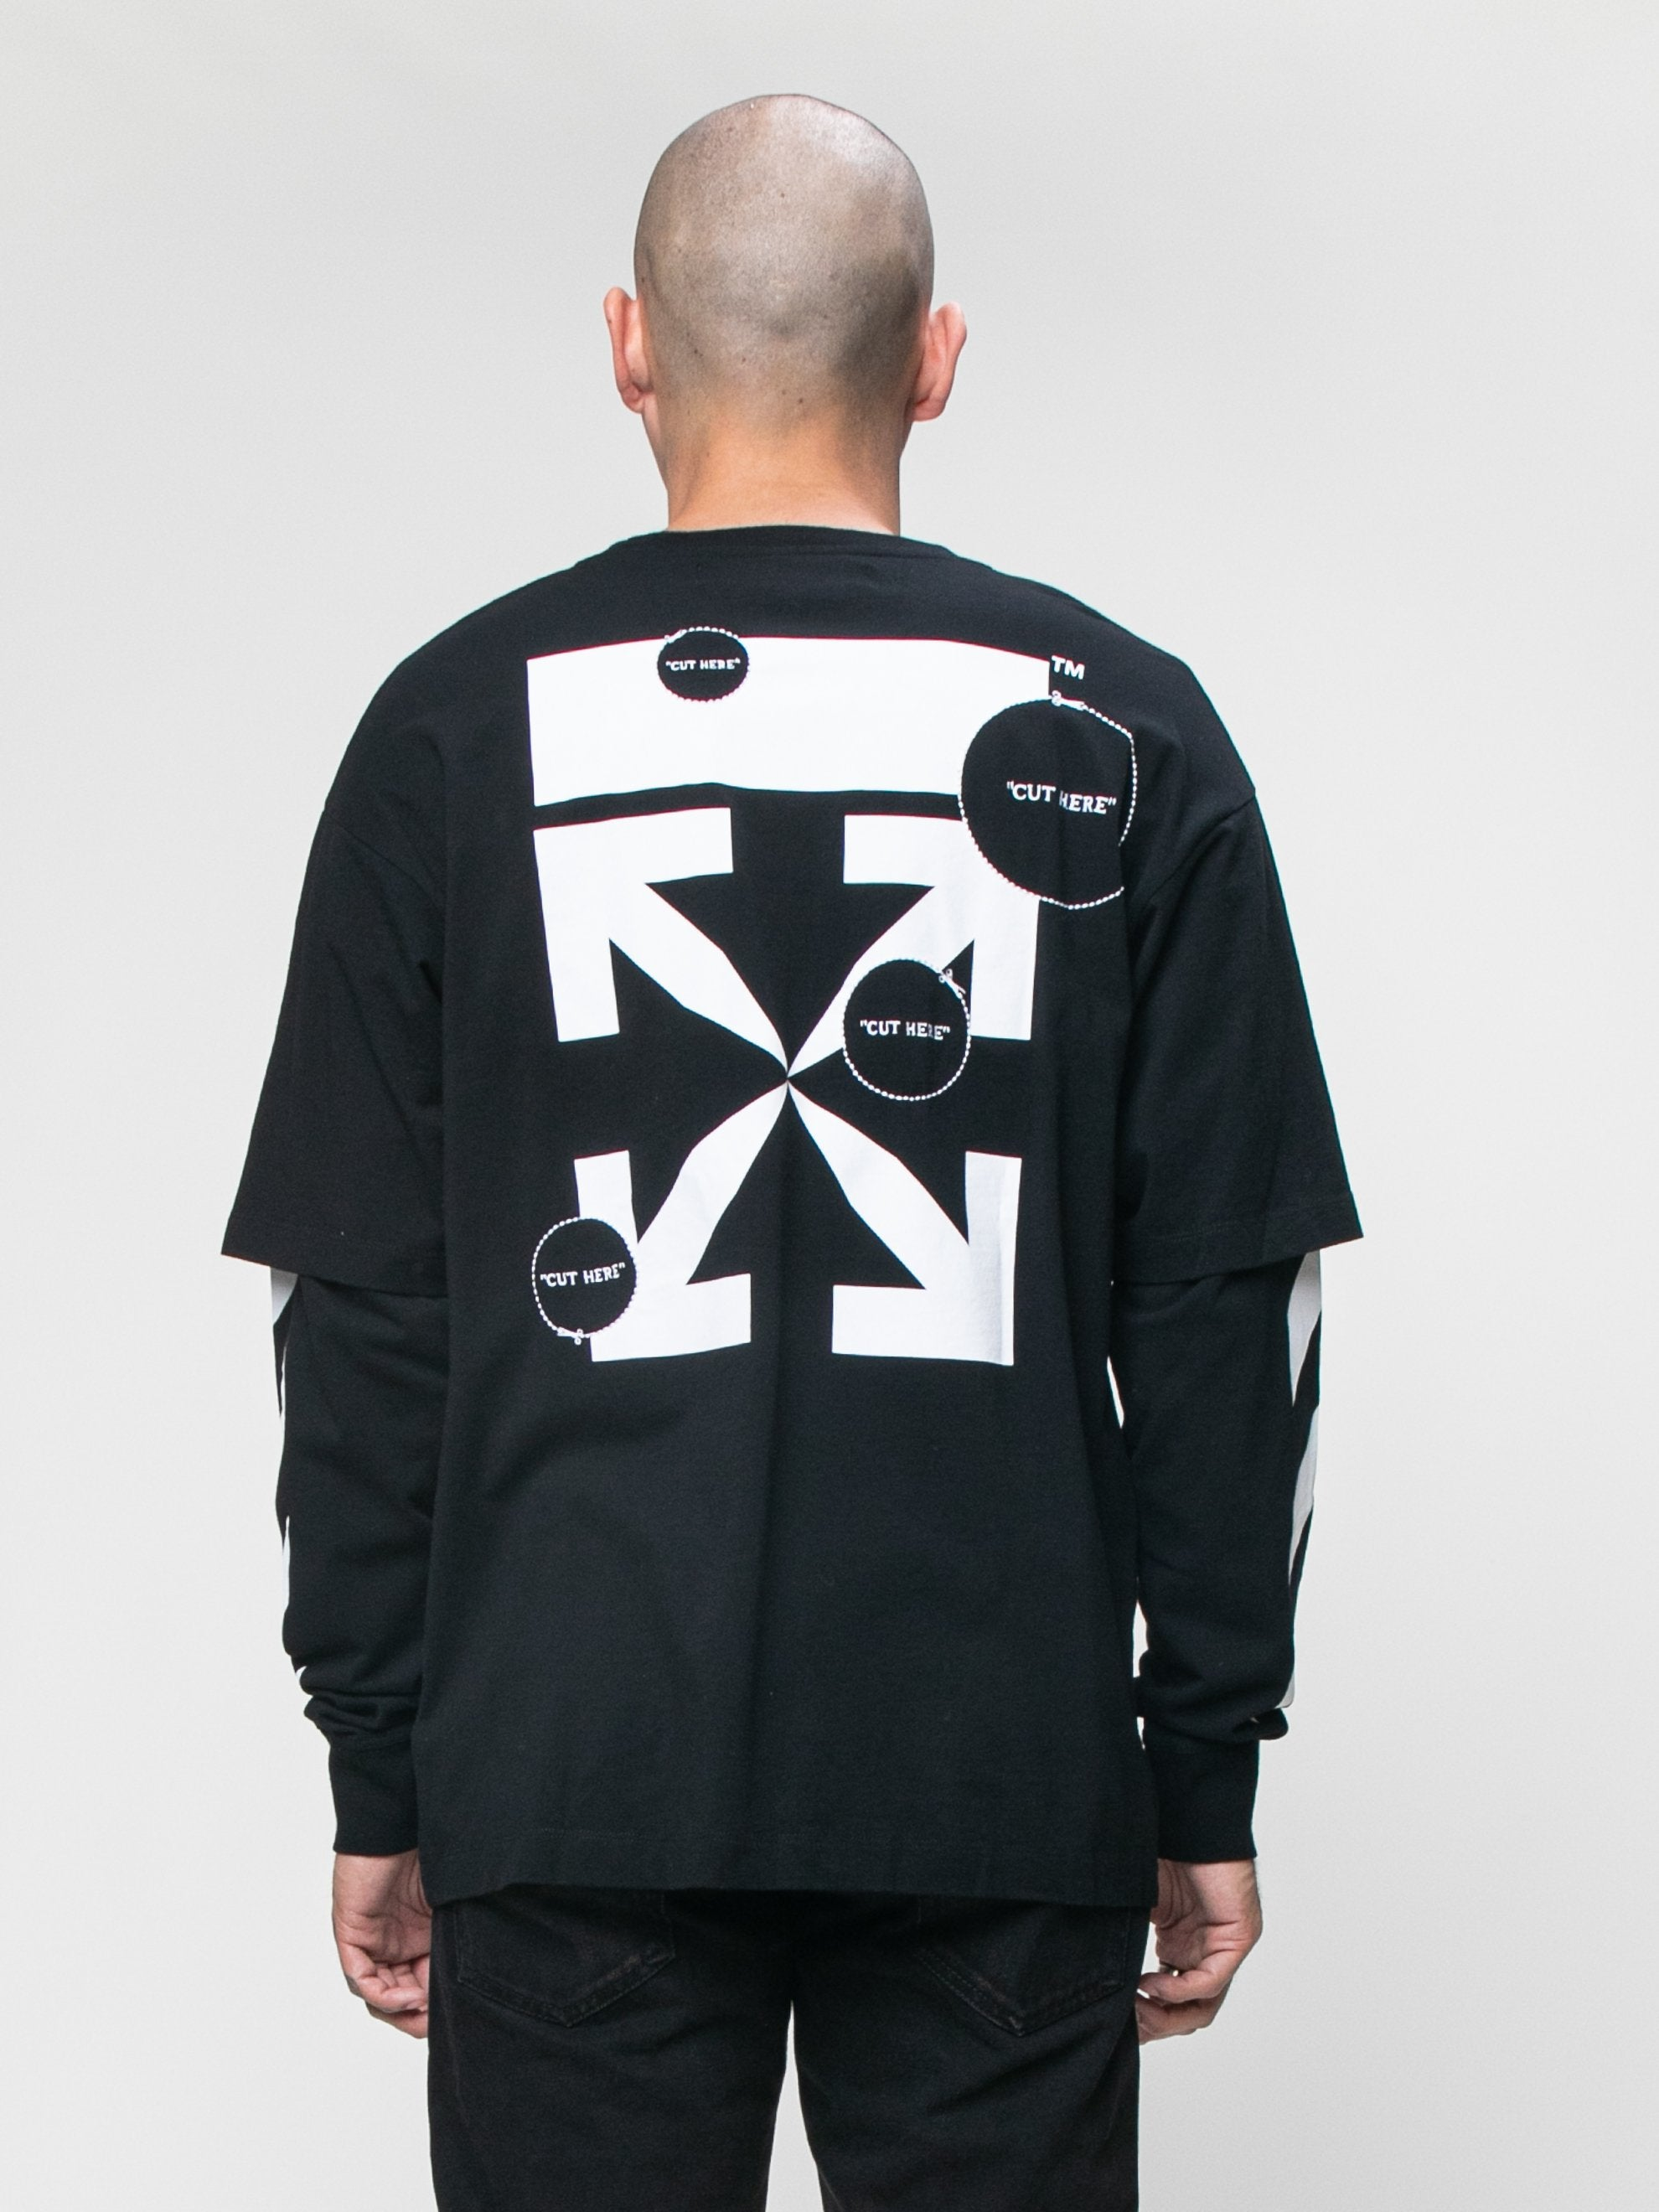 Black 'Cut Here' Long Sleeve T-Shirt 6